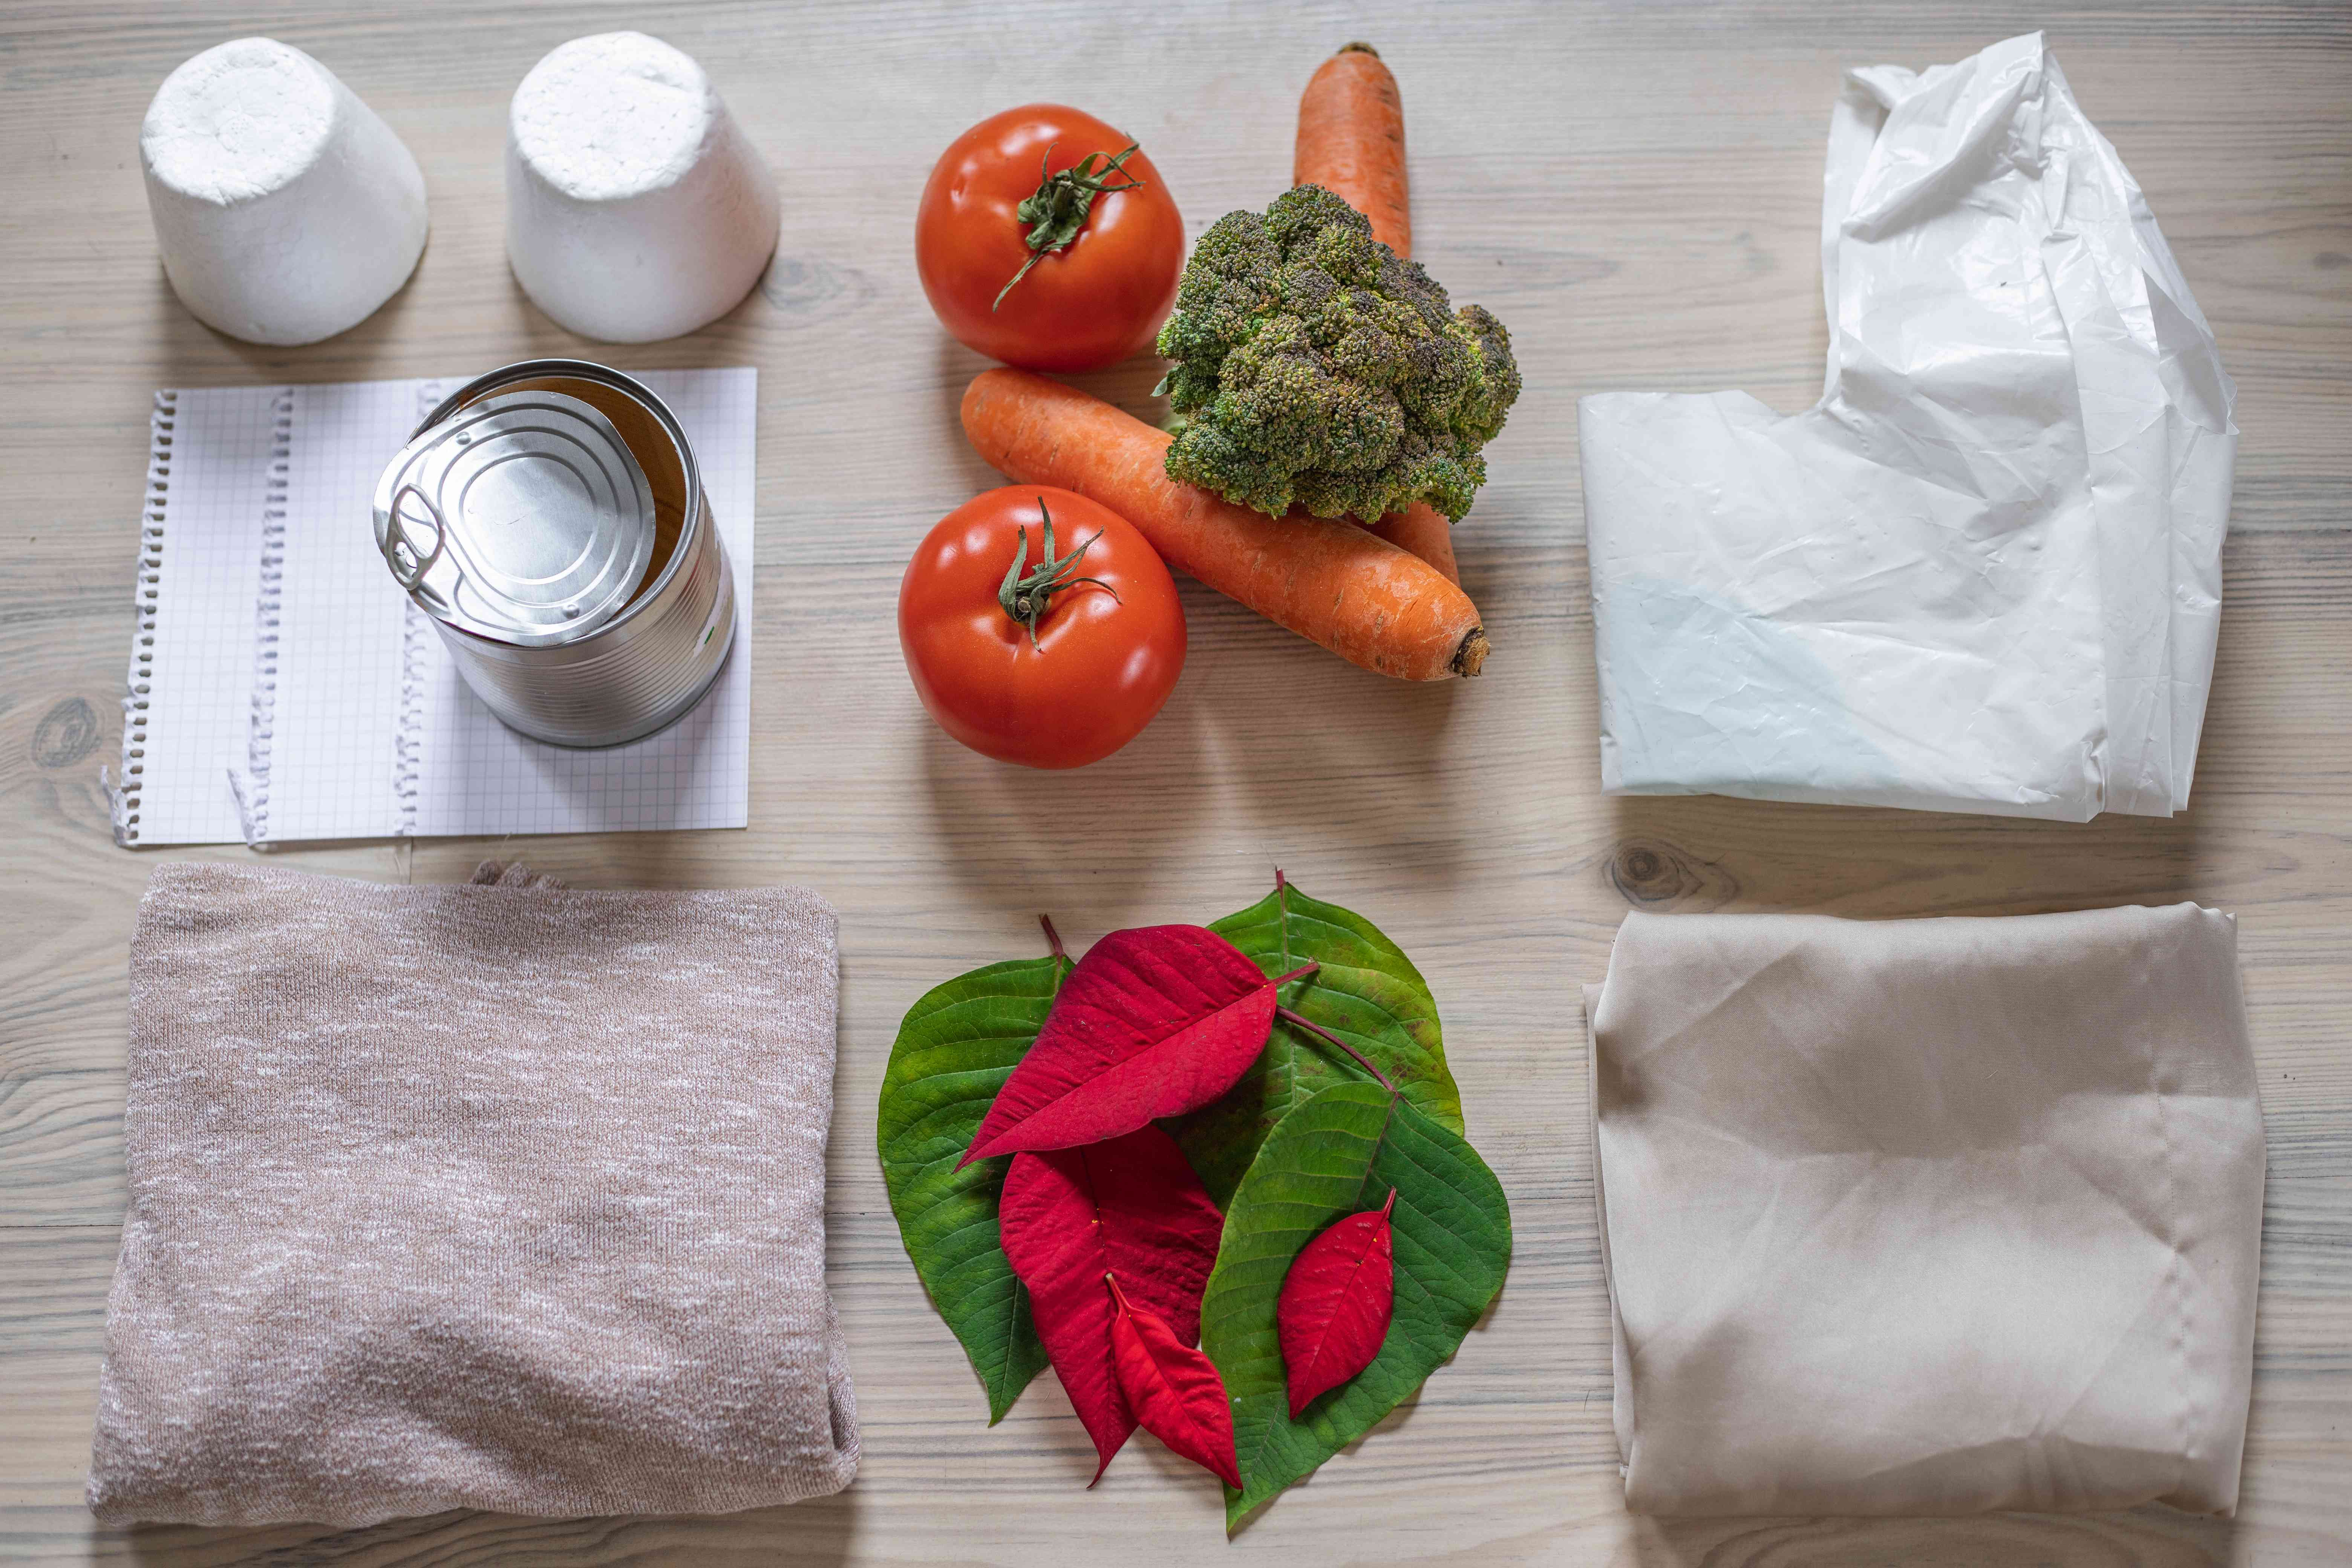 flat lay contrasting household items that are easily biodegradable as well as manmade